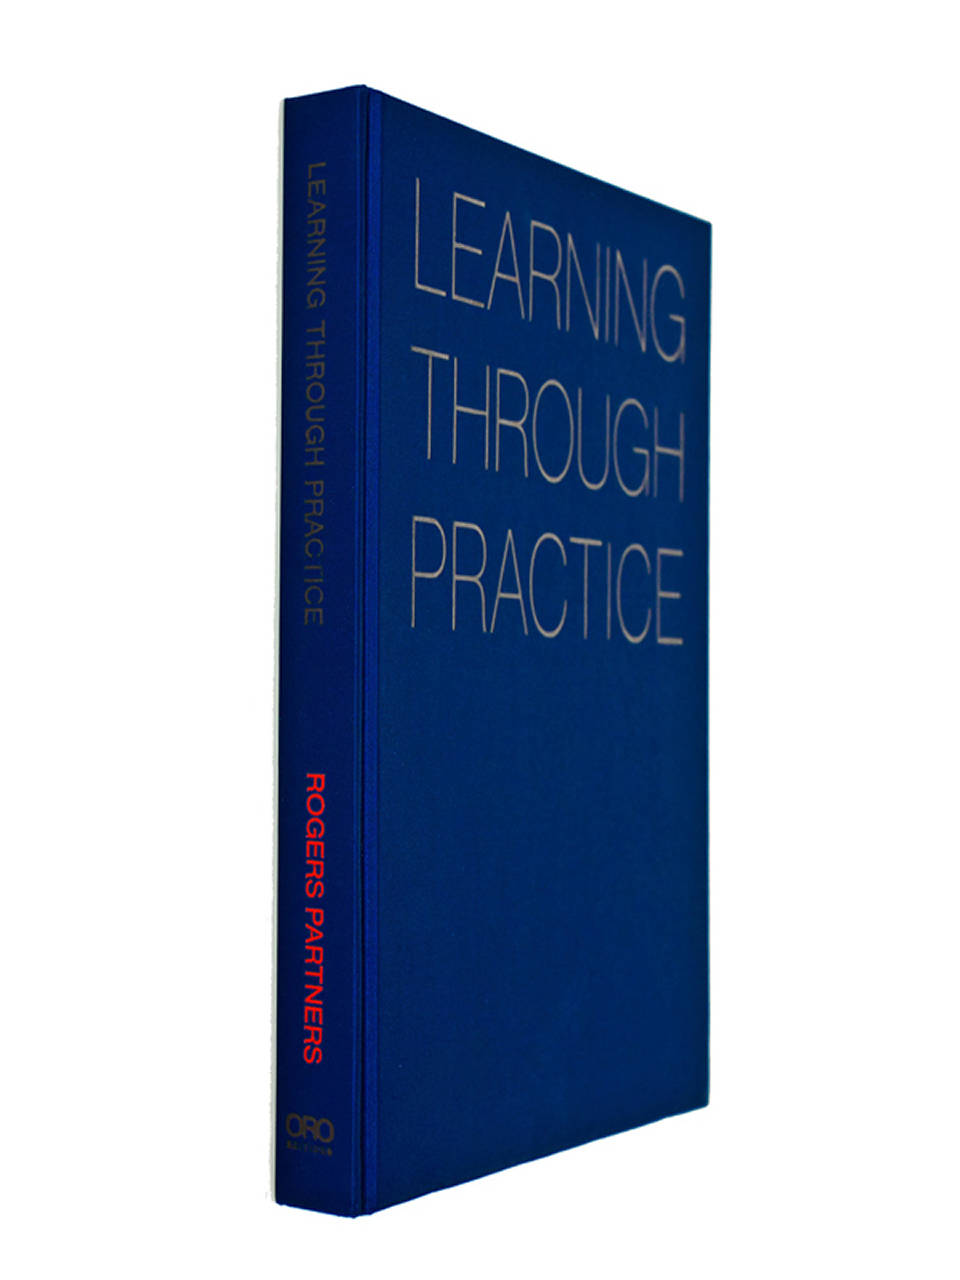 LEARNING-THROUGH-PRACTICE-ROGERS-ARCHITECTS-02.e47e3523.jpg